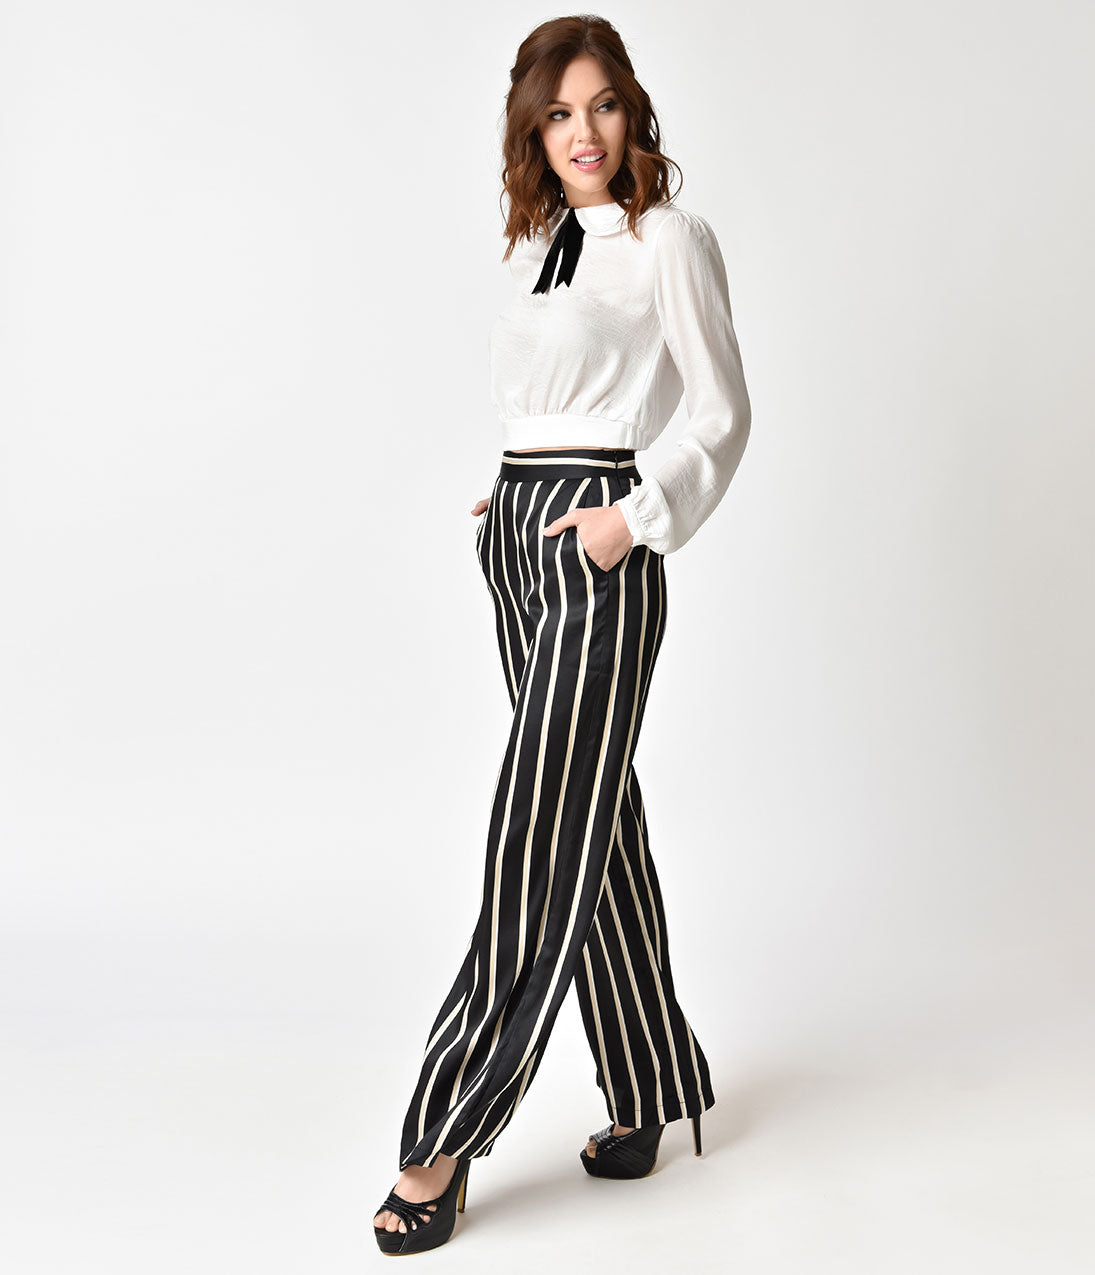 Vintage High Waisted Trousers, Sailor Pants, Jeans Black  White Striped Wide Leg Pants $46.00 AT vintagedancer.com